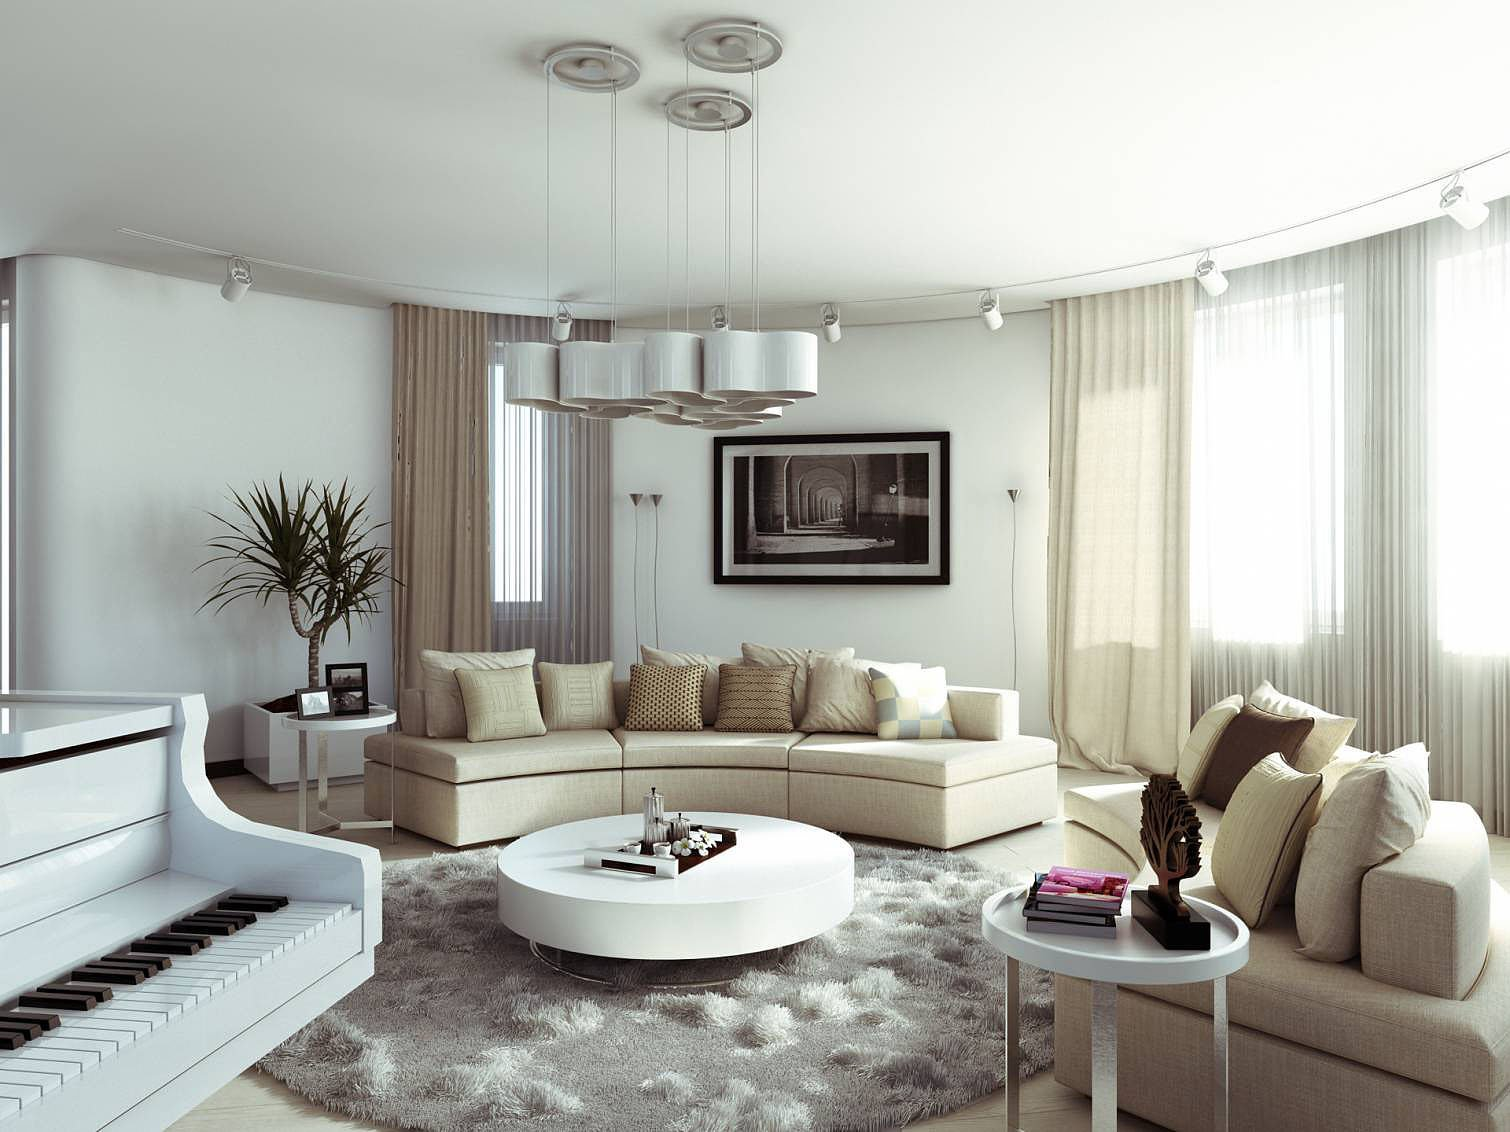 Apartment design in moskovyan plaza by ithaka for Apartment interior design ideas pictures